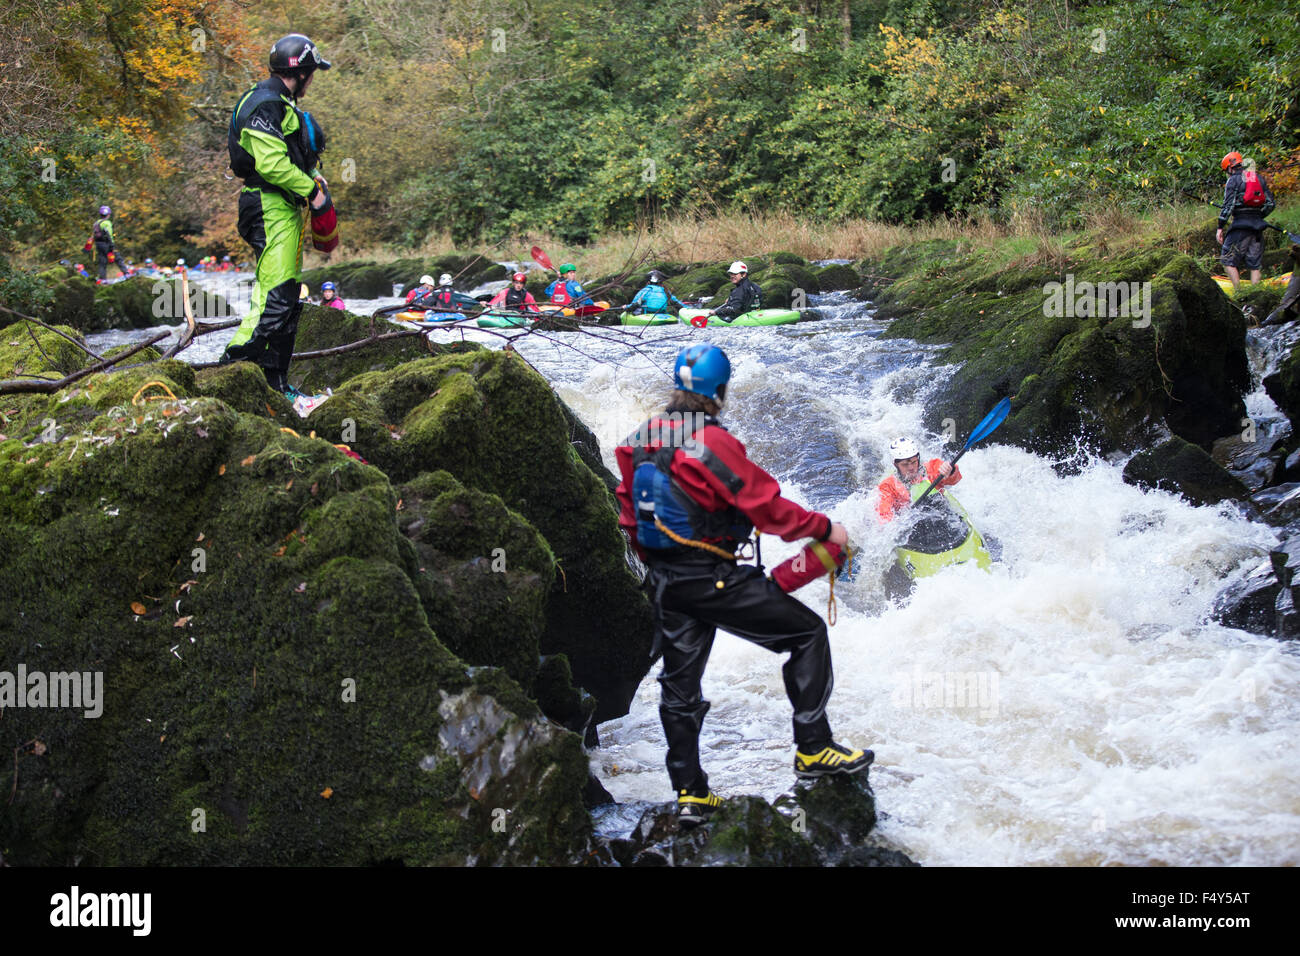 Henllan, Ceredigion, Wales, UK. 24th Oct, 2015. The annual Teifi Tour takes place this weekend. Kayakers, mainly Stock Photo